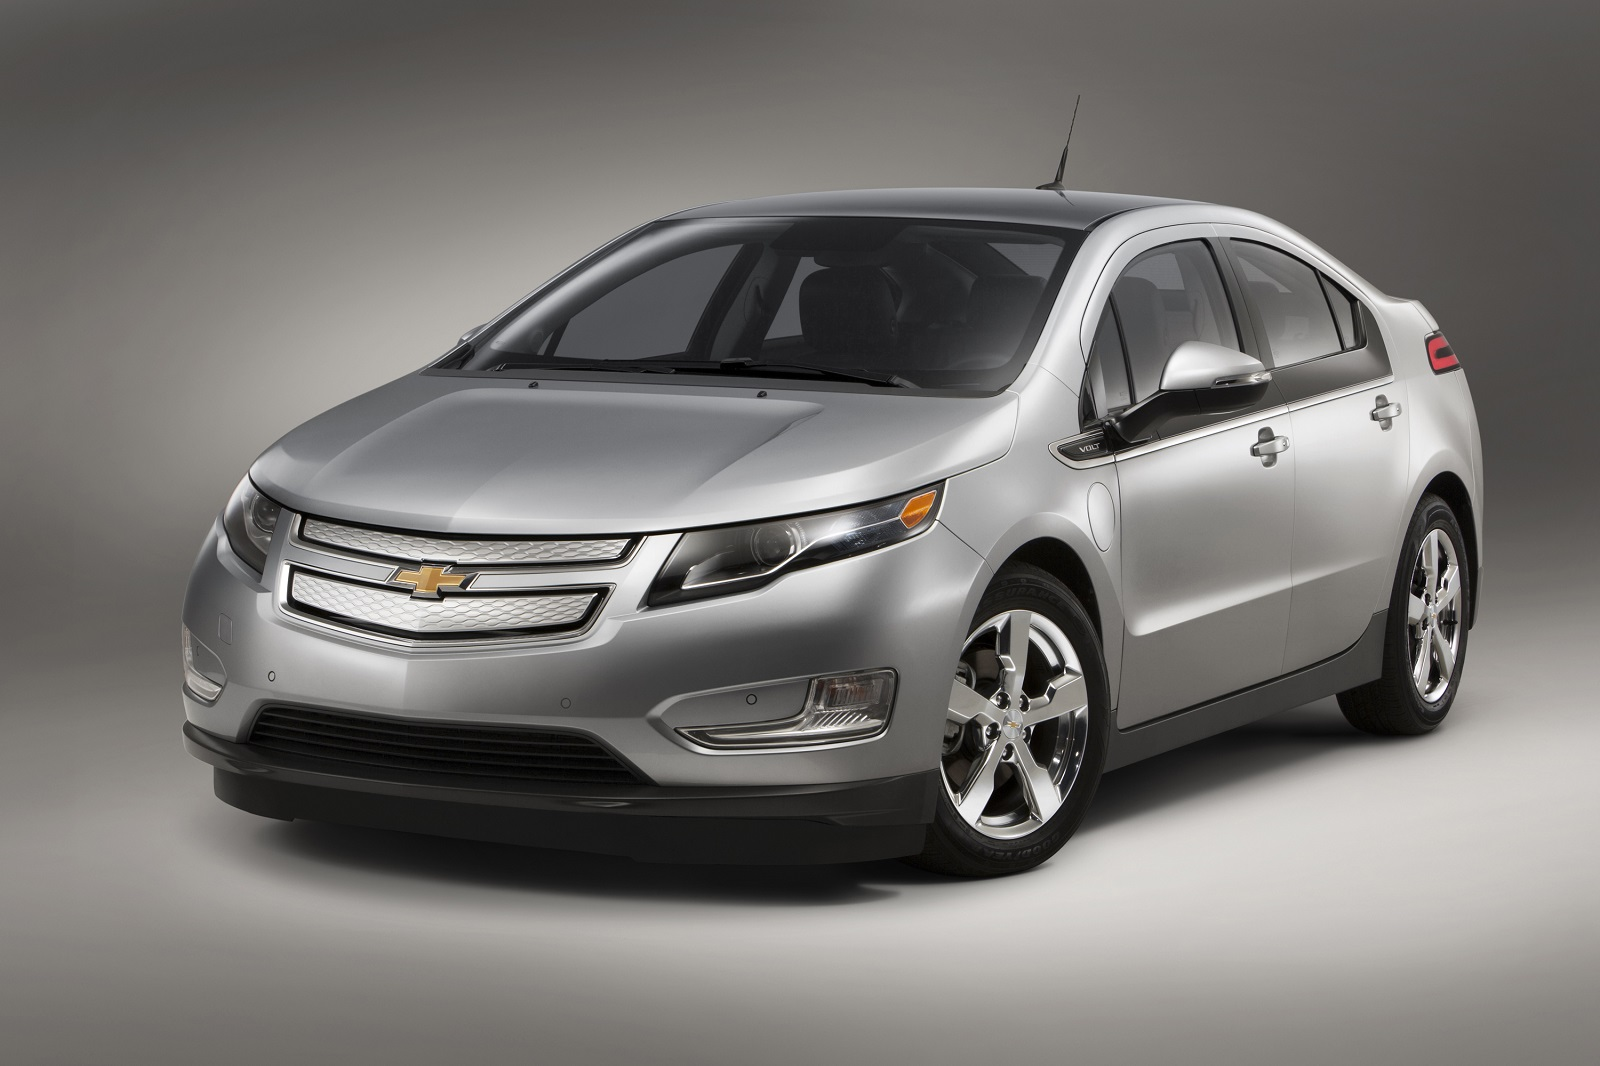 2016 chevy malibu hybrid to take volt s powertrain to the masses. Black Bedroom Furniture Sets. Home Design Ideas